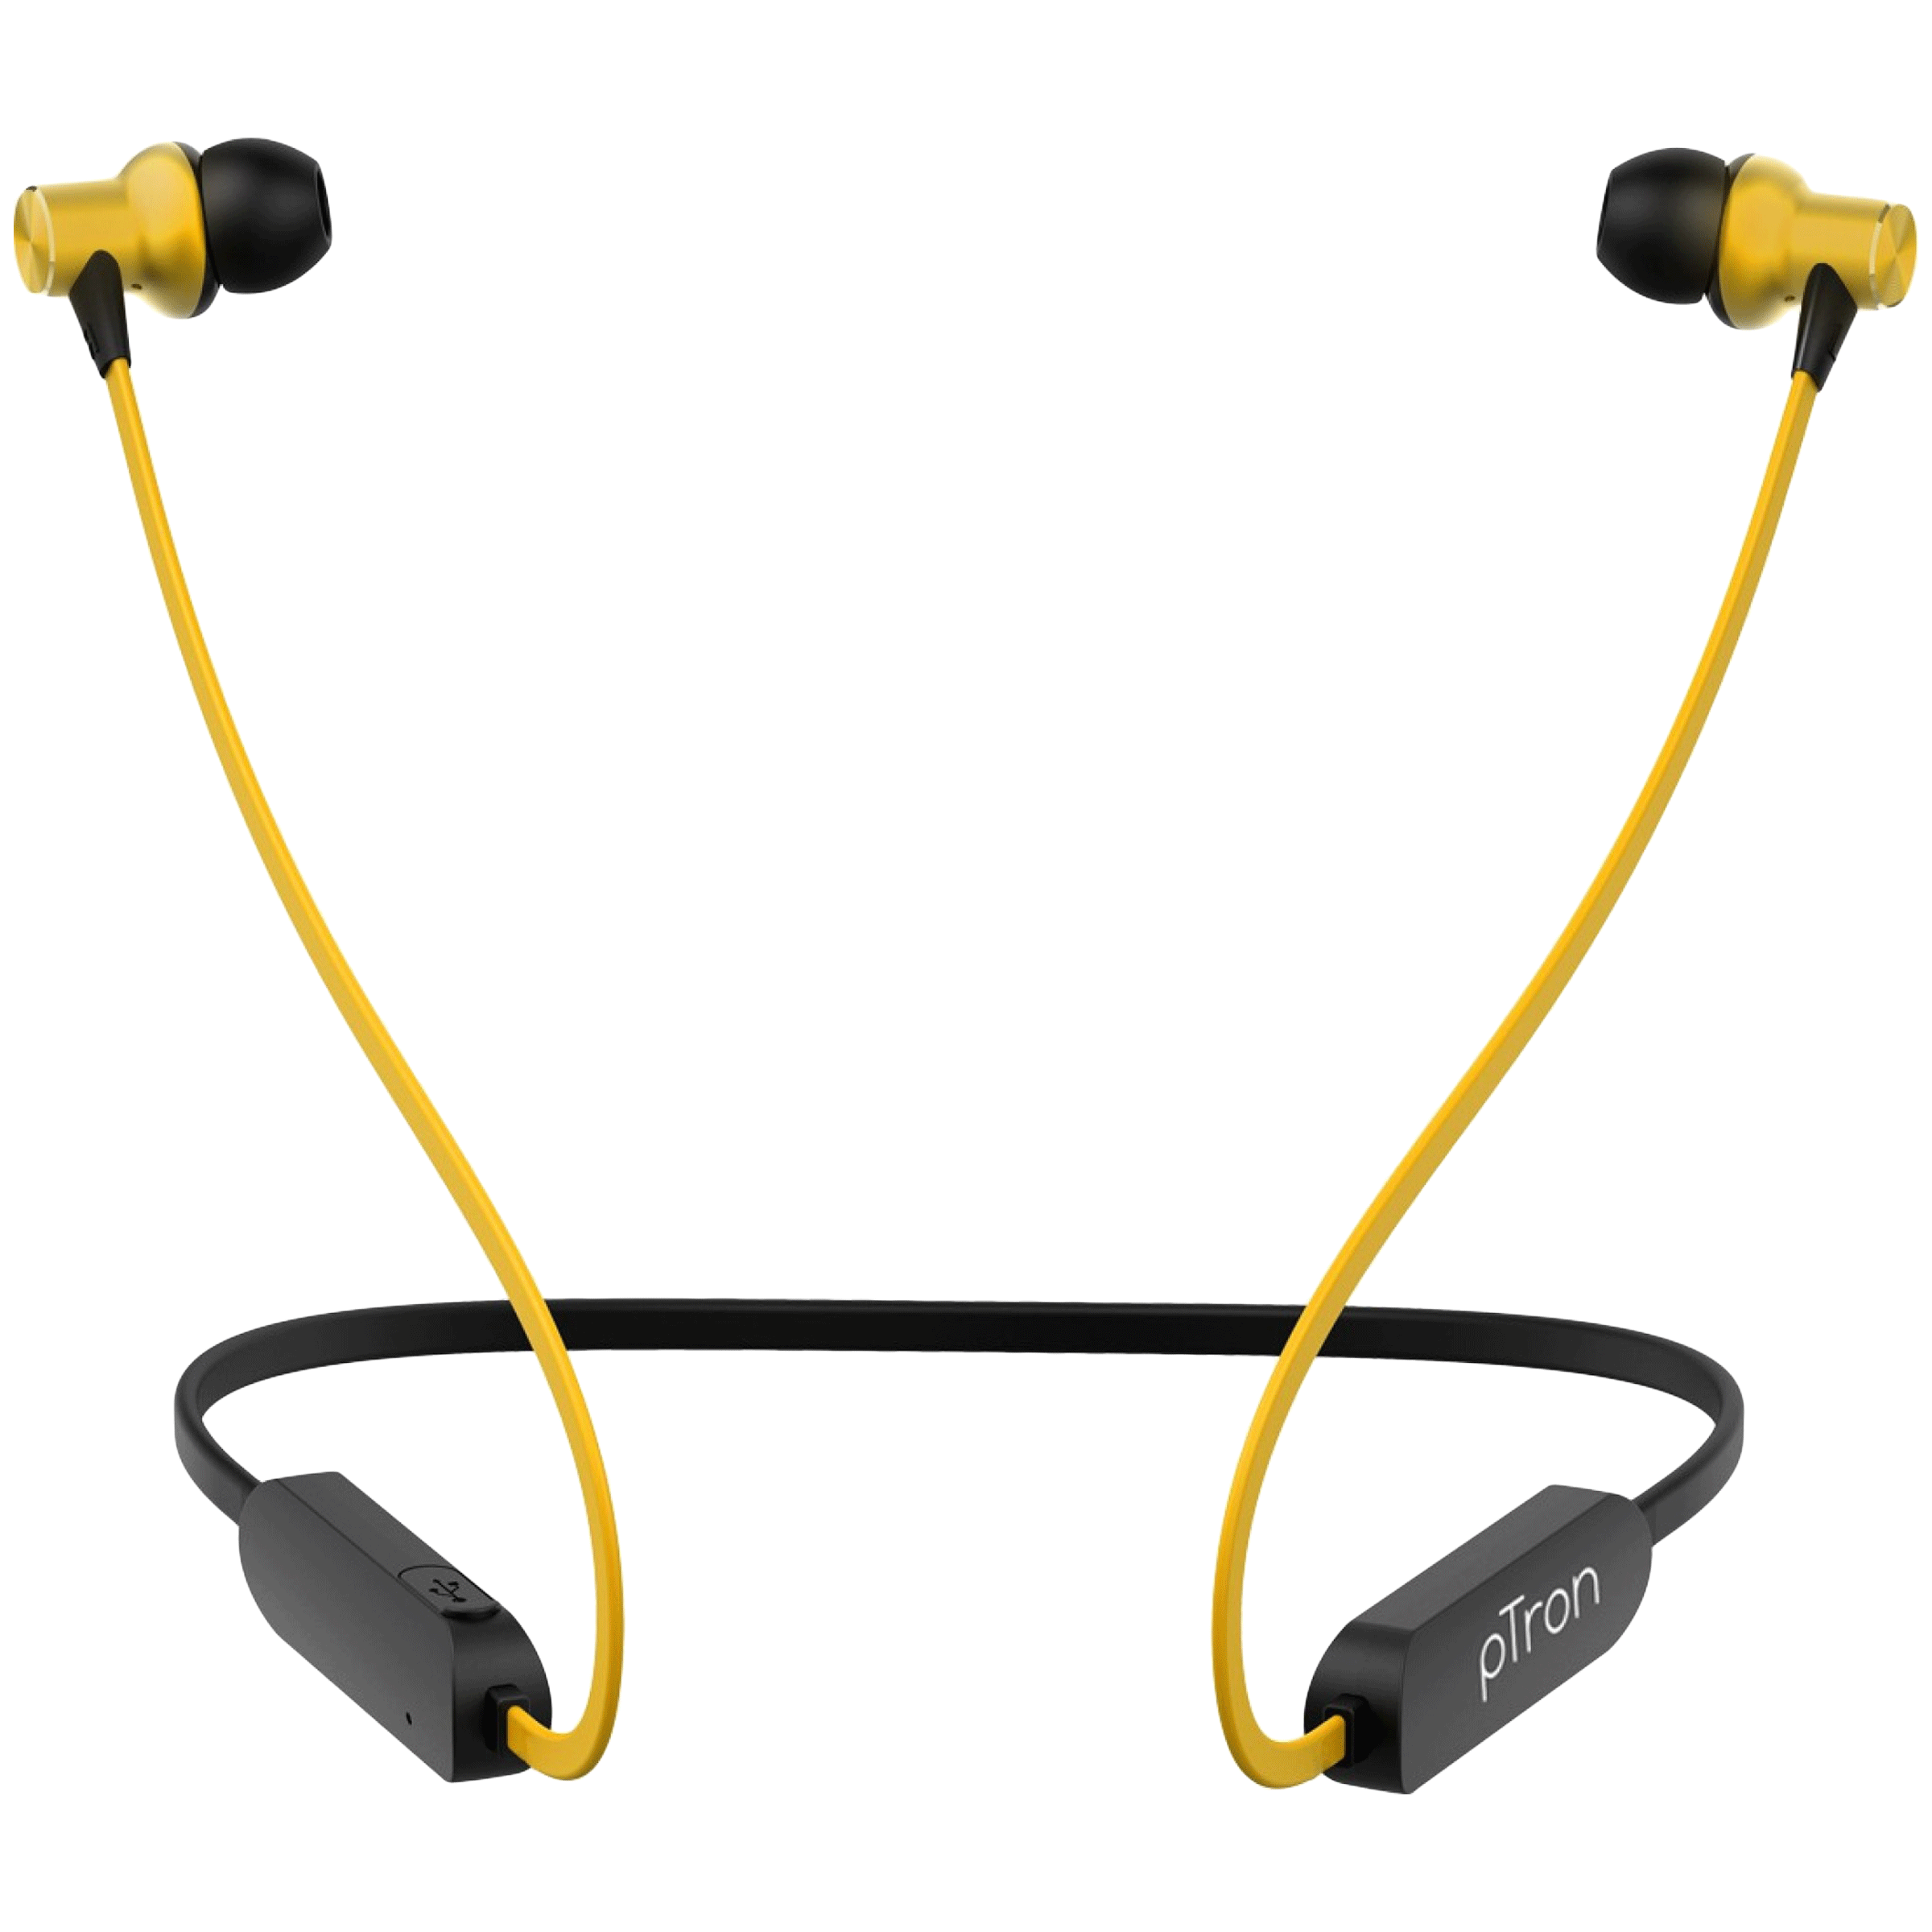 pTron Avento Classic In-Ear Passive Noise Cancellation Wireless Earphone with Mic (Bluetooth 5.0, Magnetic Locking, 140317898, Black/Yellow)_1